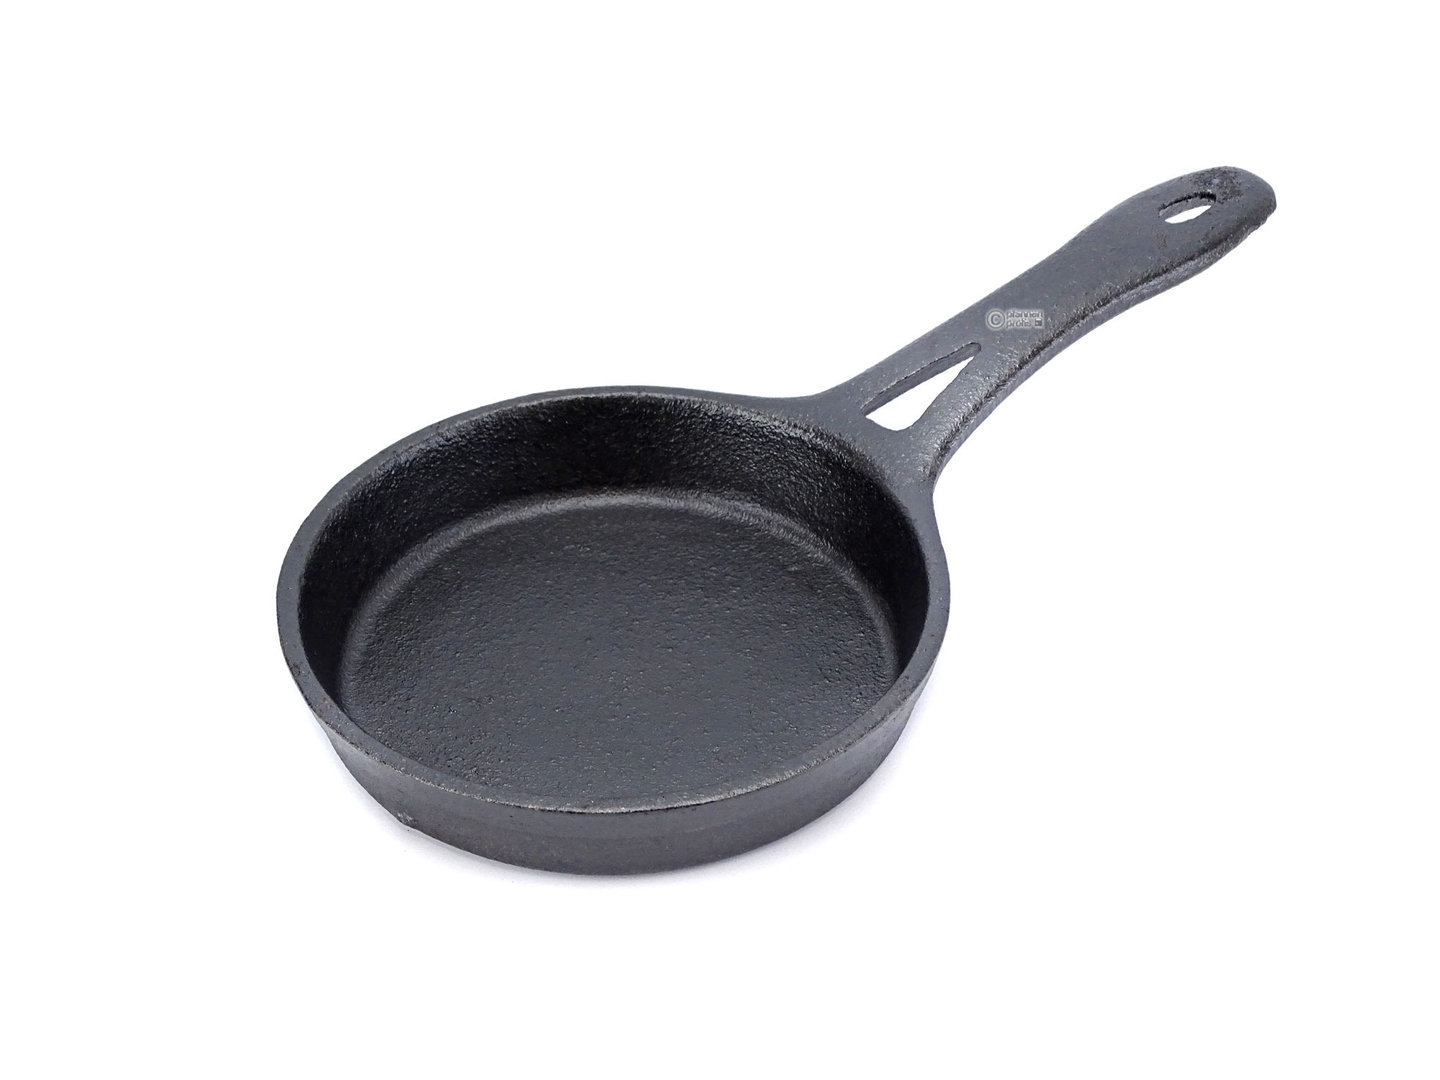 RONNEBY BRUK mini cast iron Blini frypan RONDO 13 cm, pre-seasoned